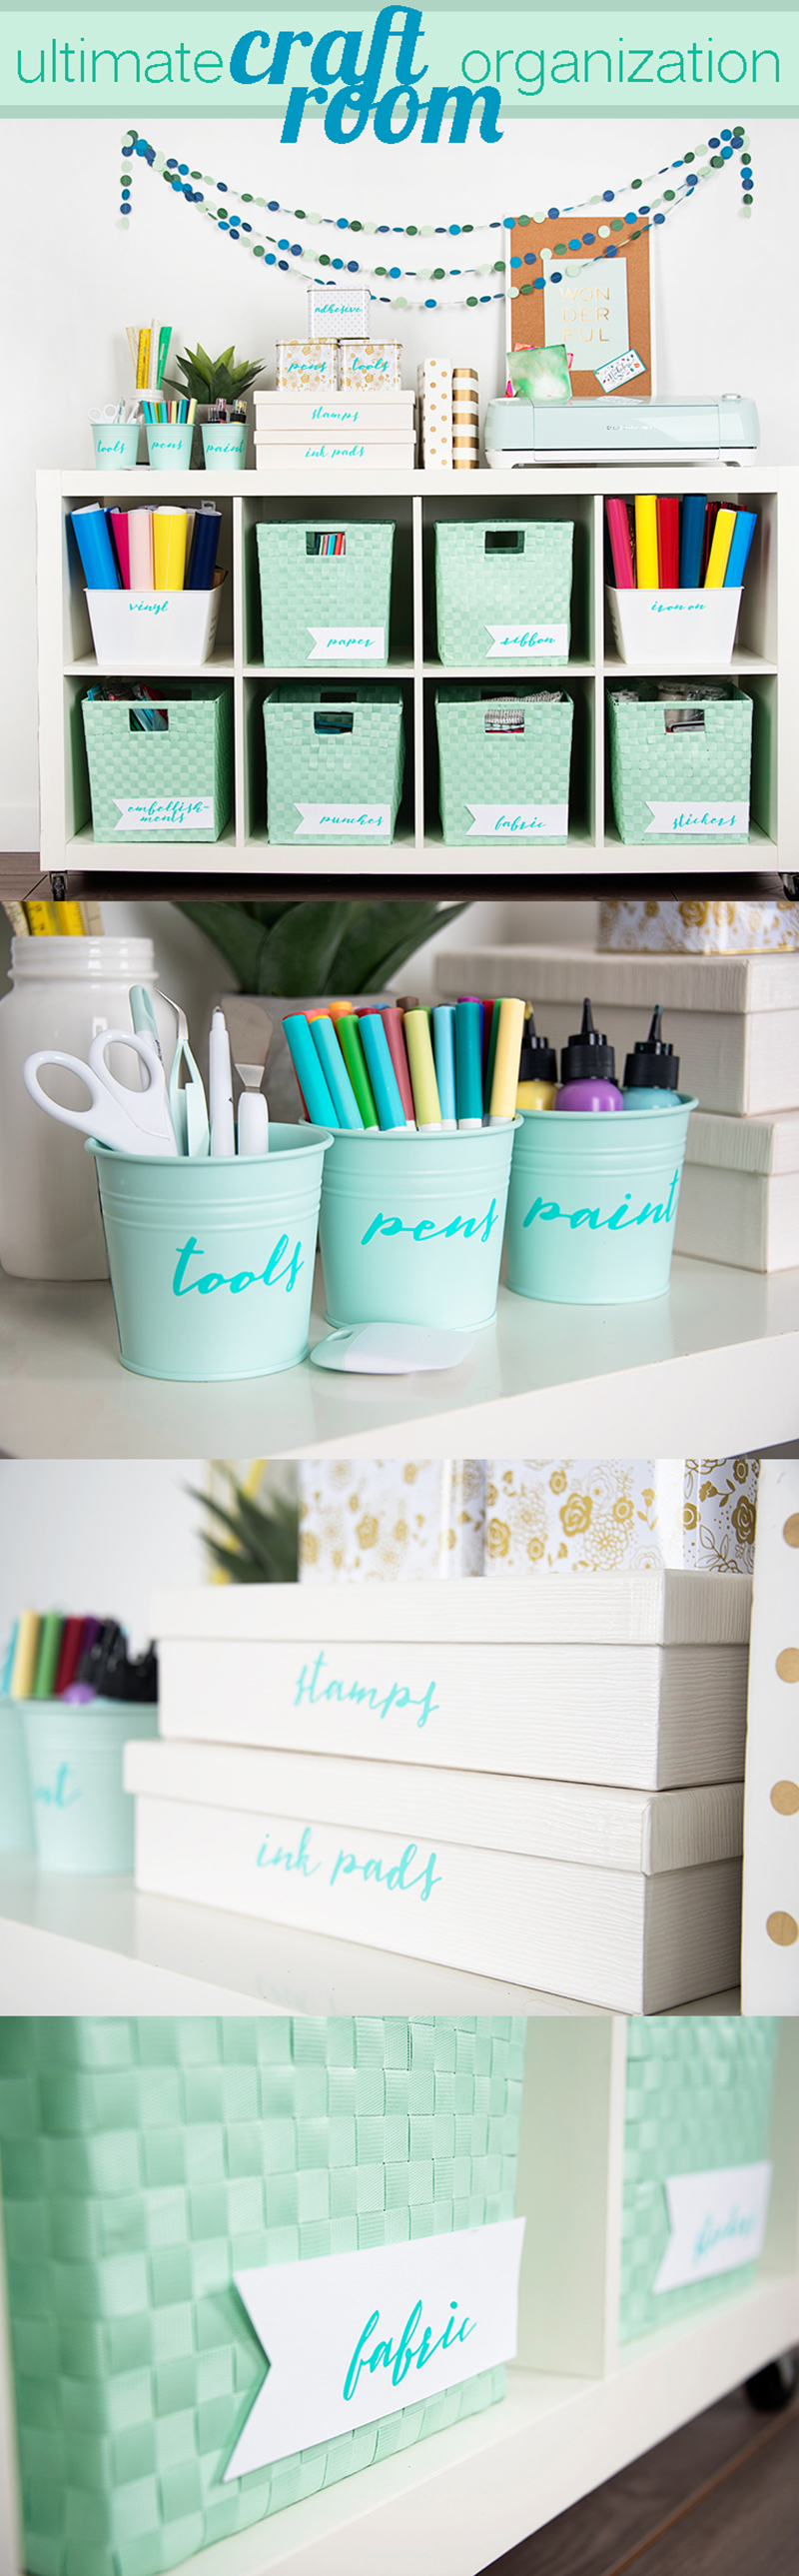 cricut craft room download